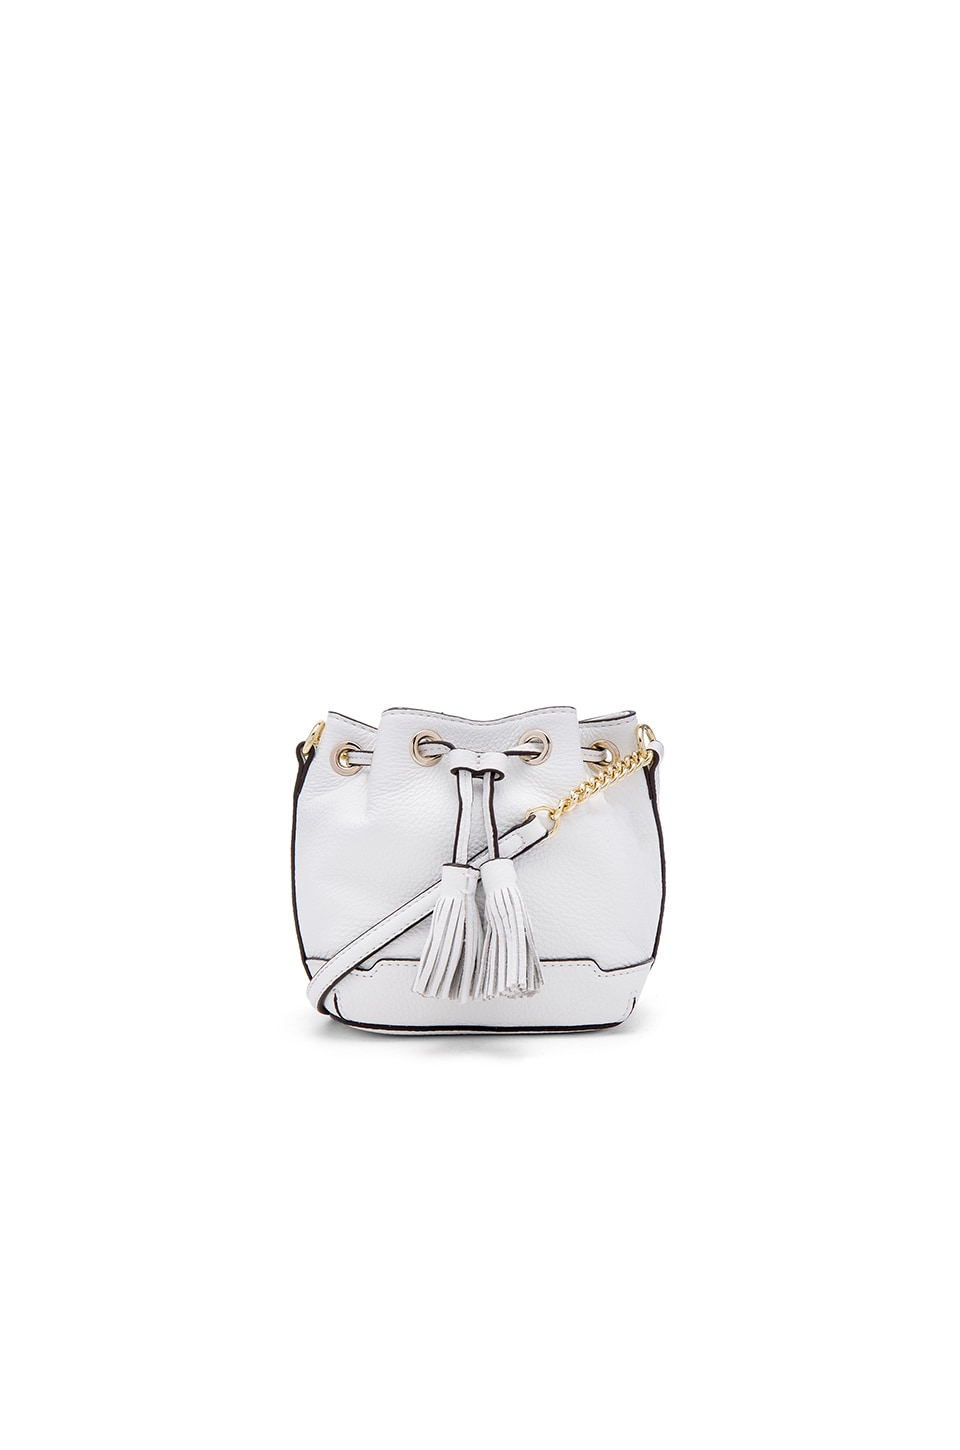 Rebecca Minkoff Micro Lexi Bucket Bag in White